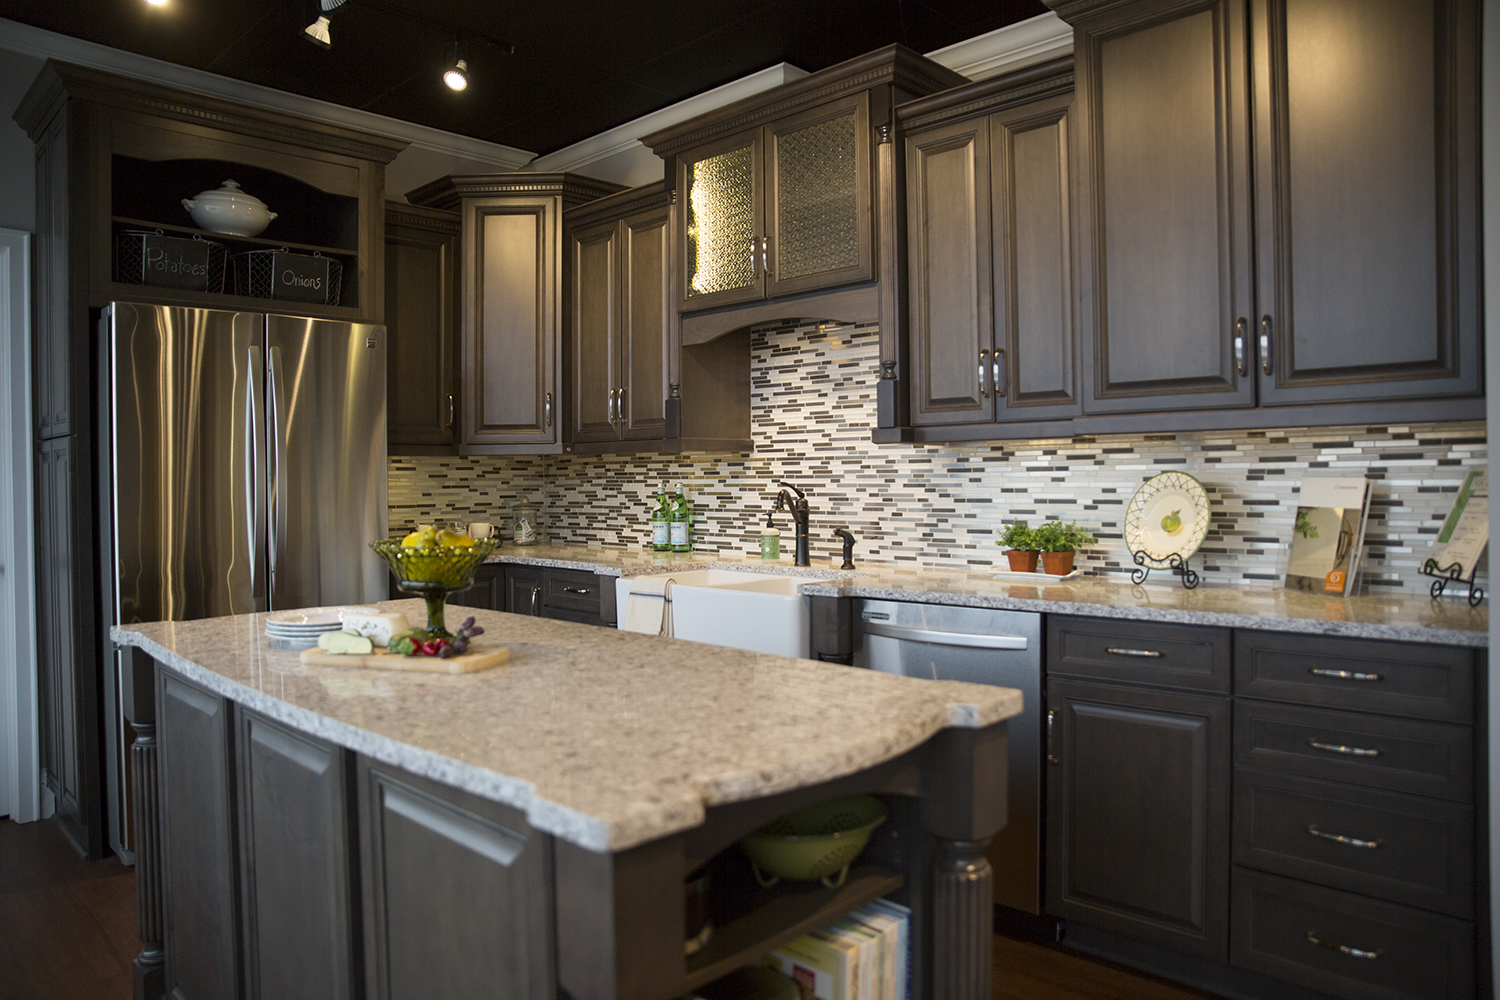 Melbourne Florida Kitchen And Bath Cabinets Countertops Hammond Brevard